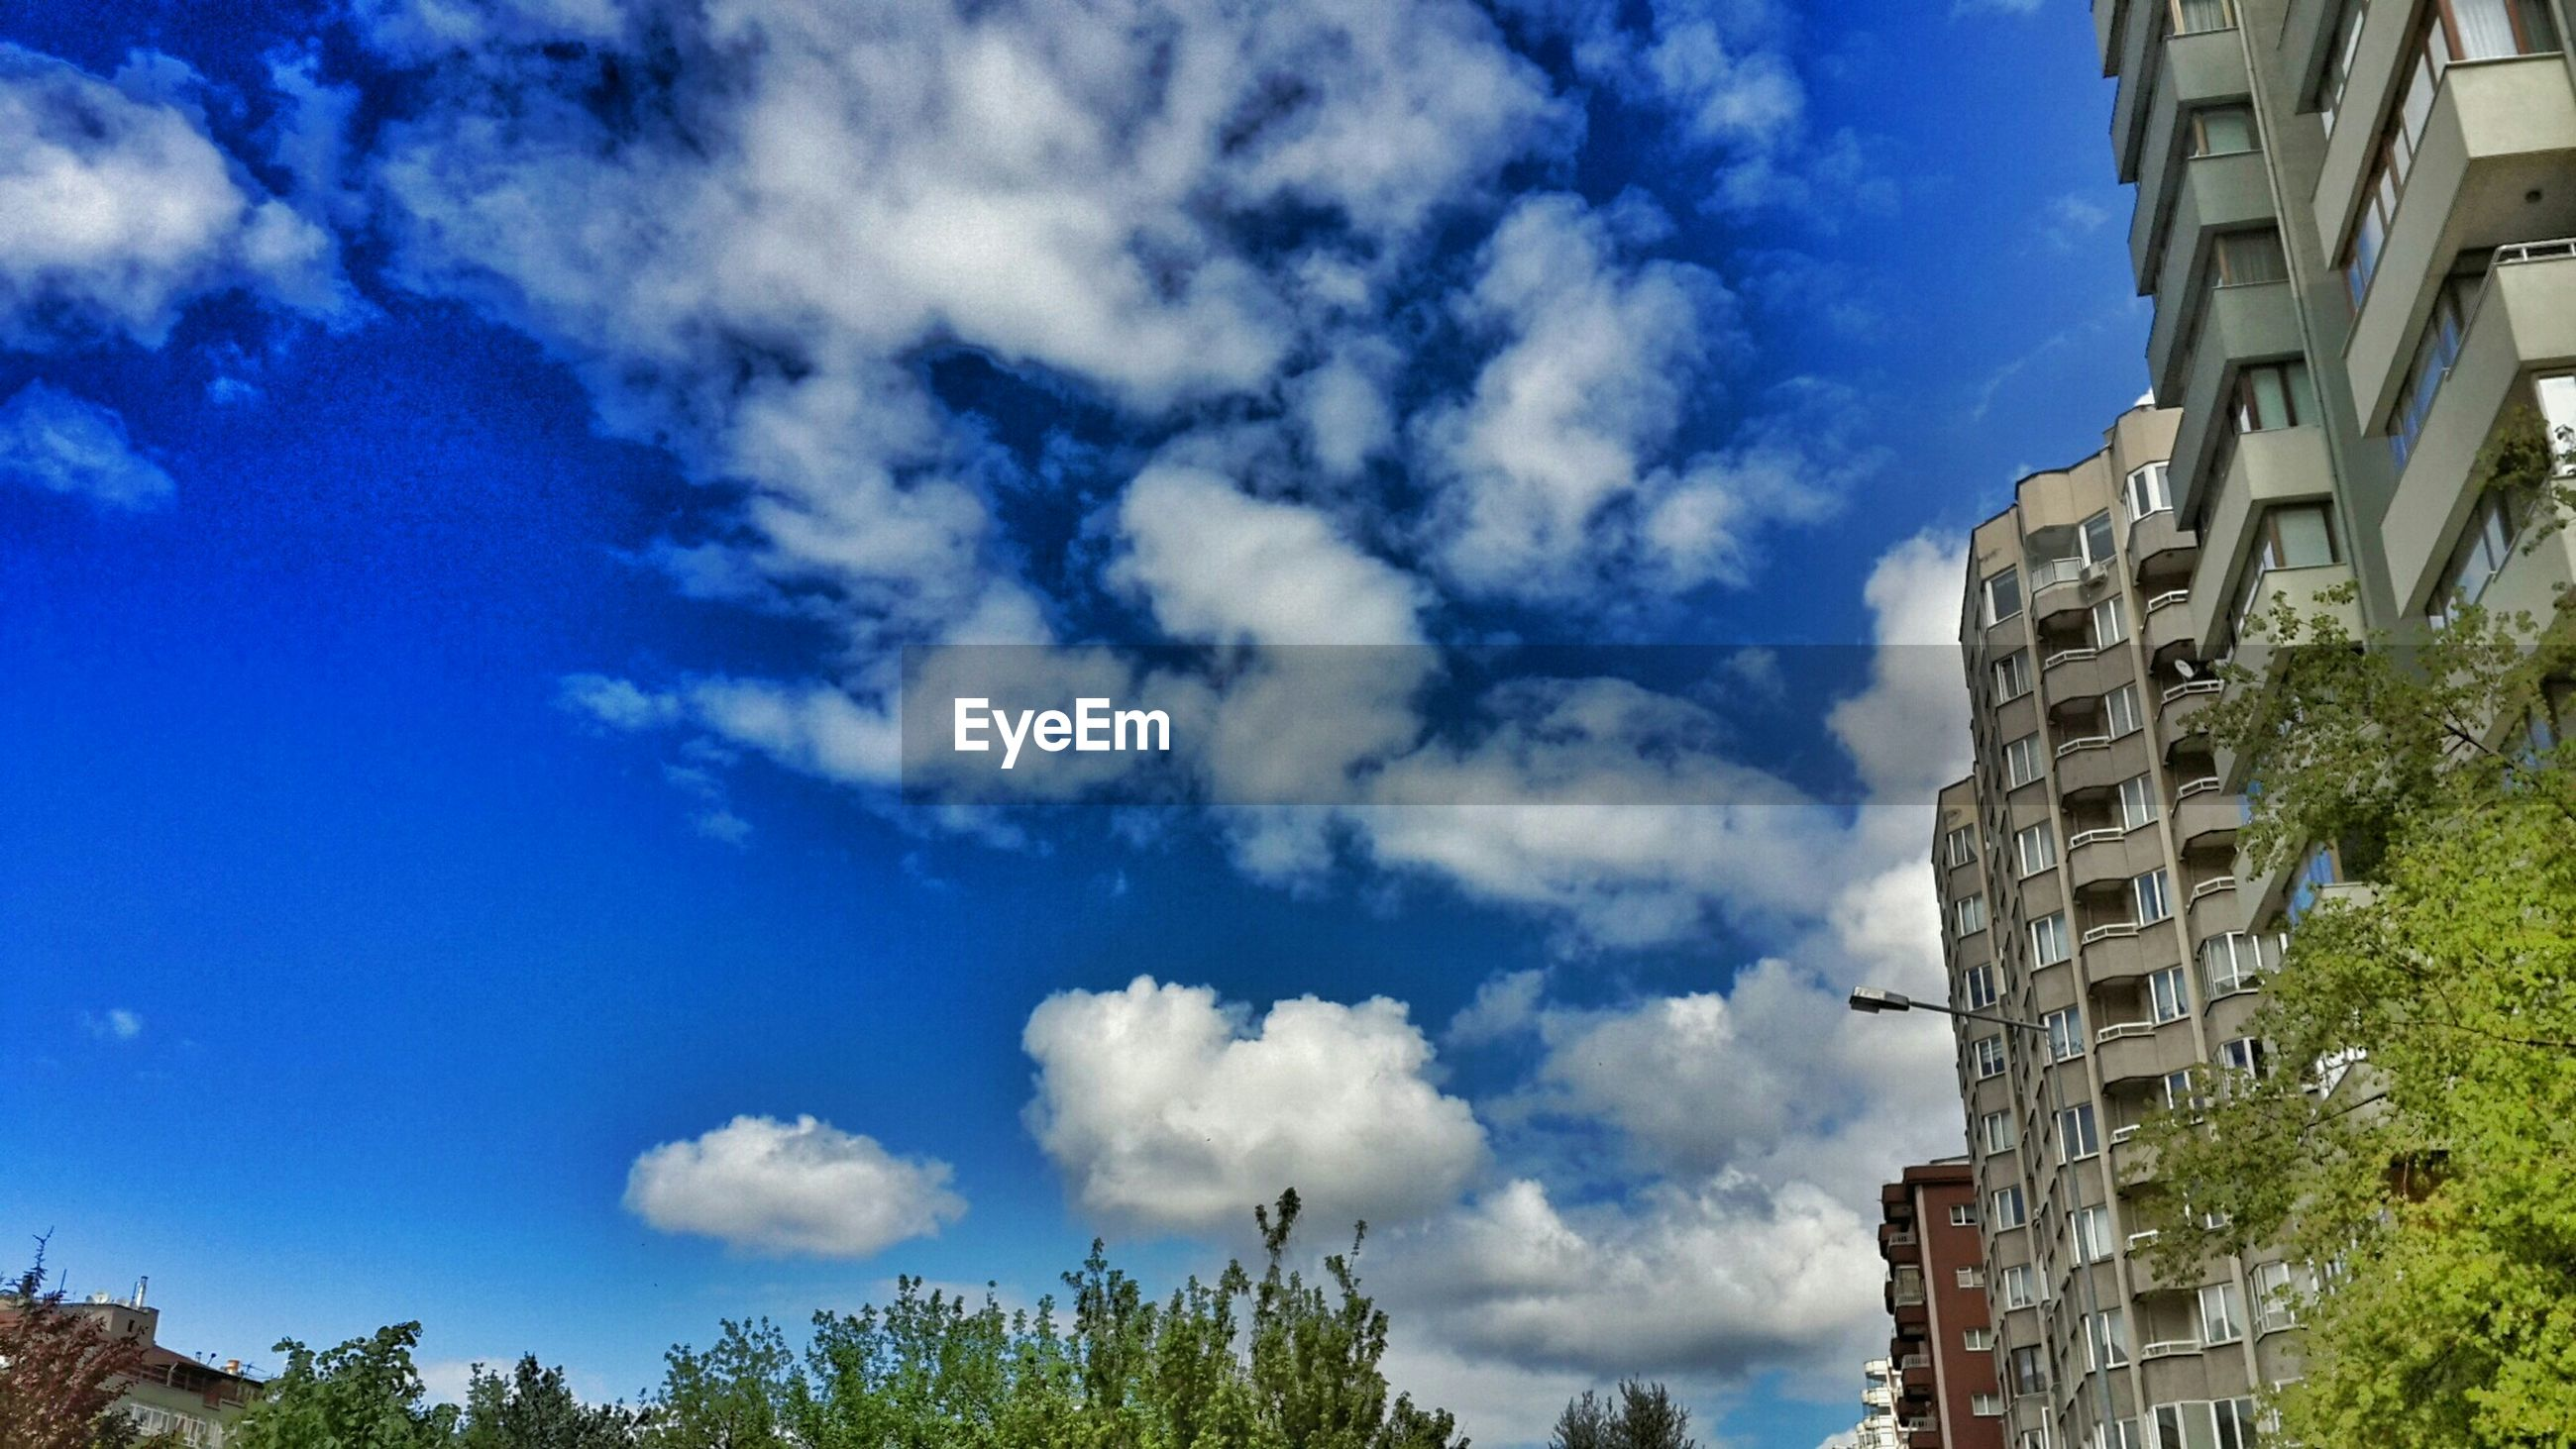 building exterior, architecture, built structure, sky, blue, low angle view, cloud - sky, tree, cloud, building, day, house, residential structure, outdoors, cloudy, residential building, city, no people, growth, sunlight